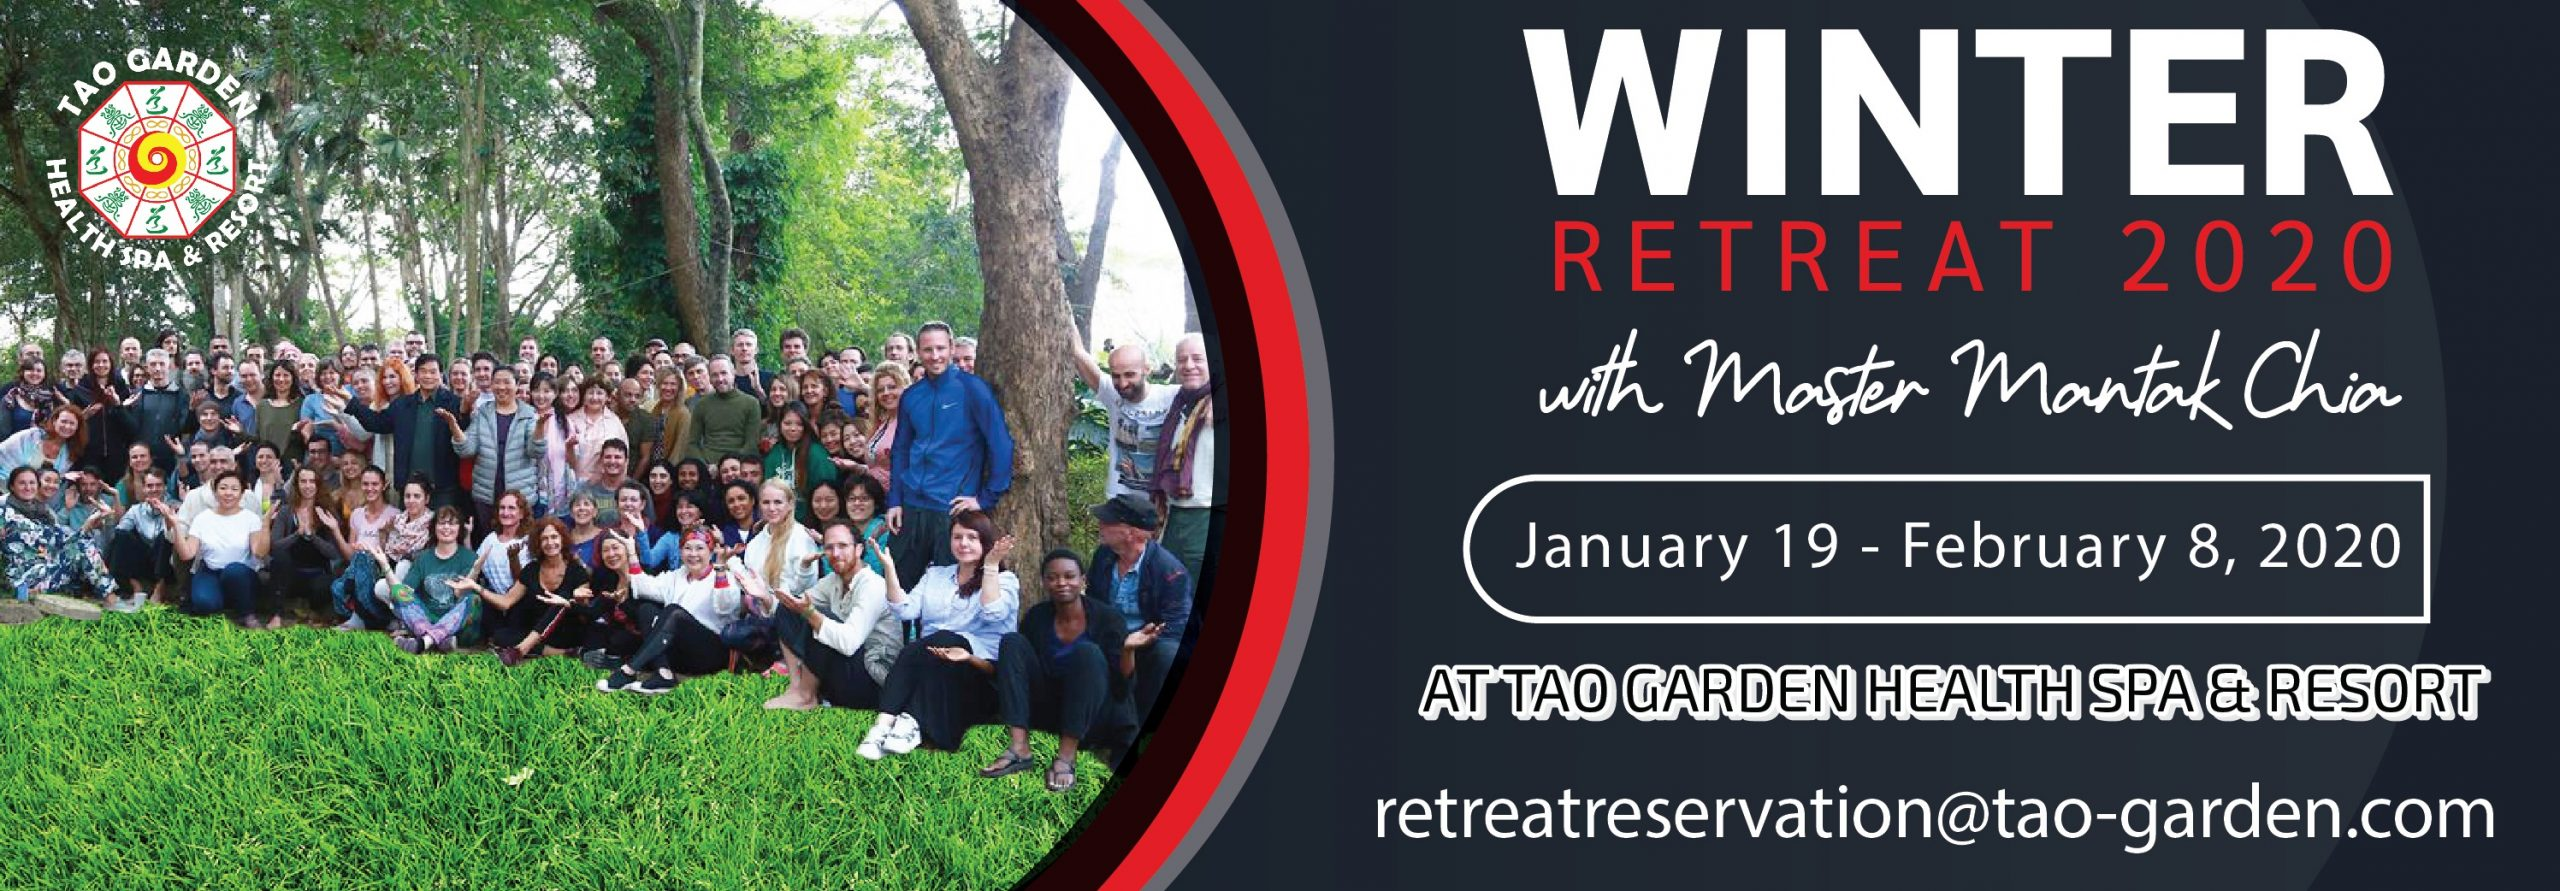 Winter Retreat 2020 with Master Mantak Chia at Tao Garden Health Spa & Resort